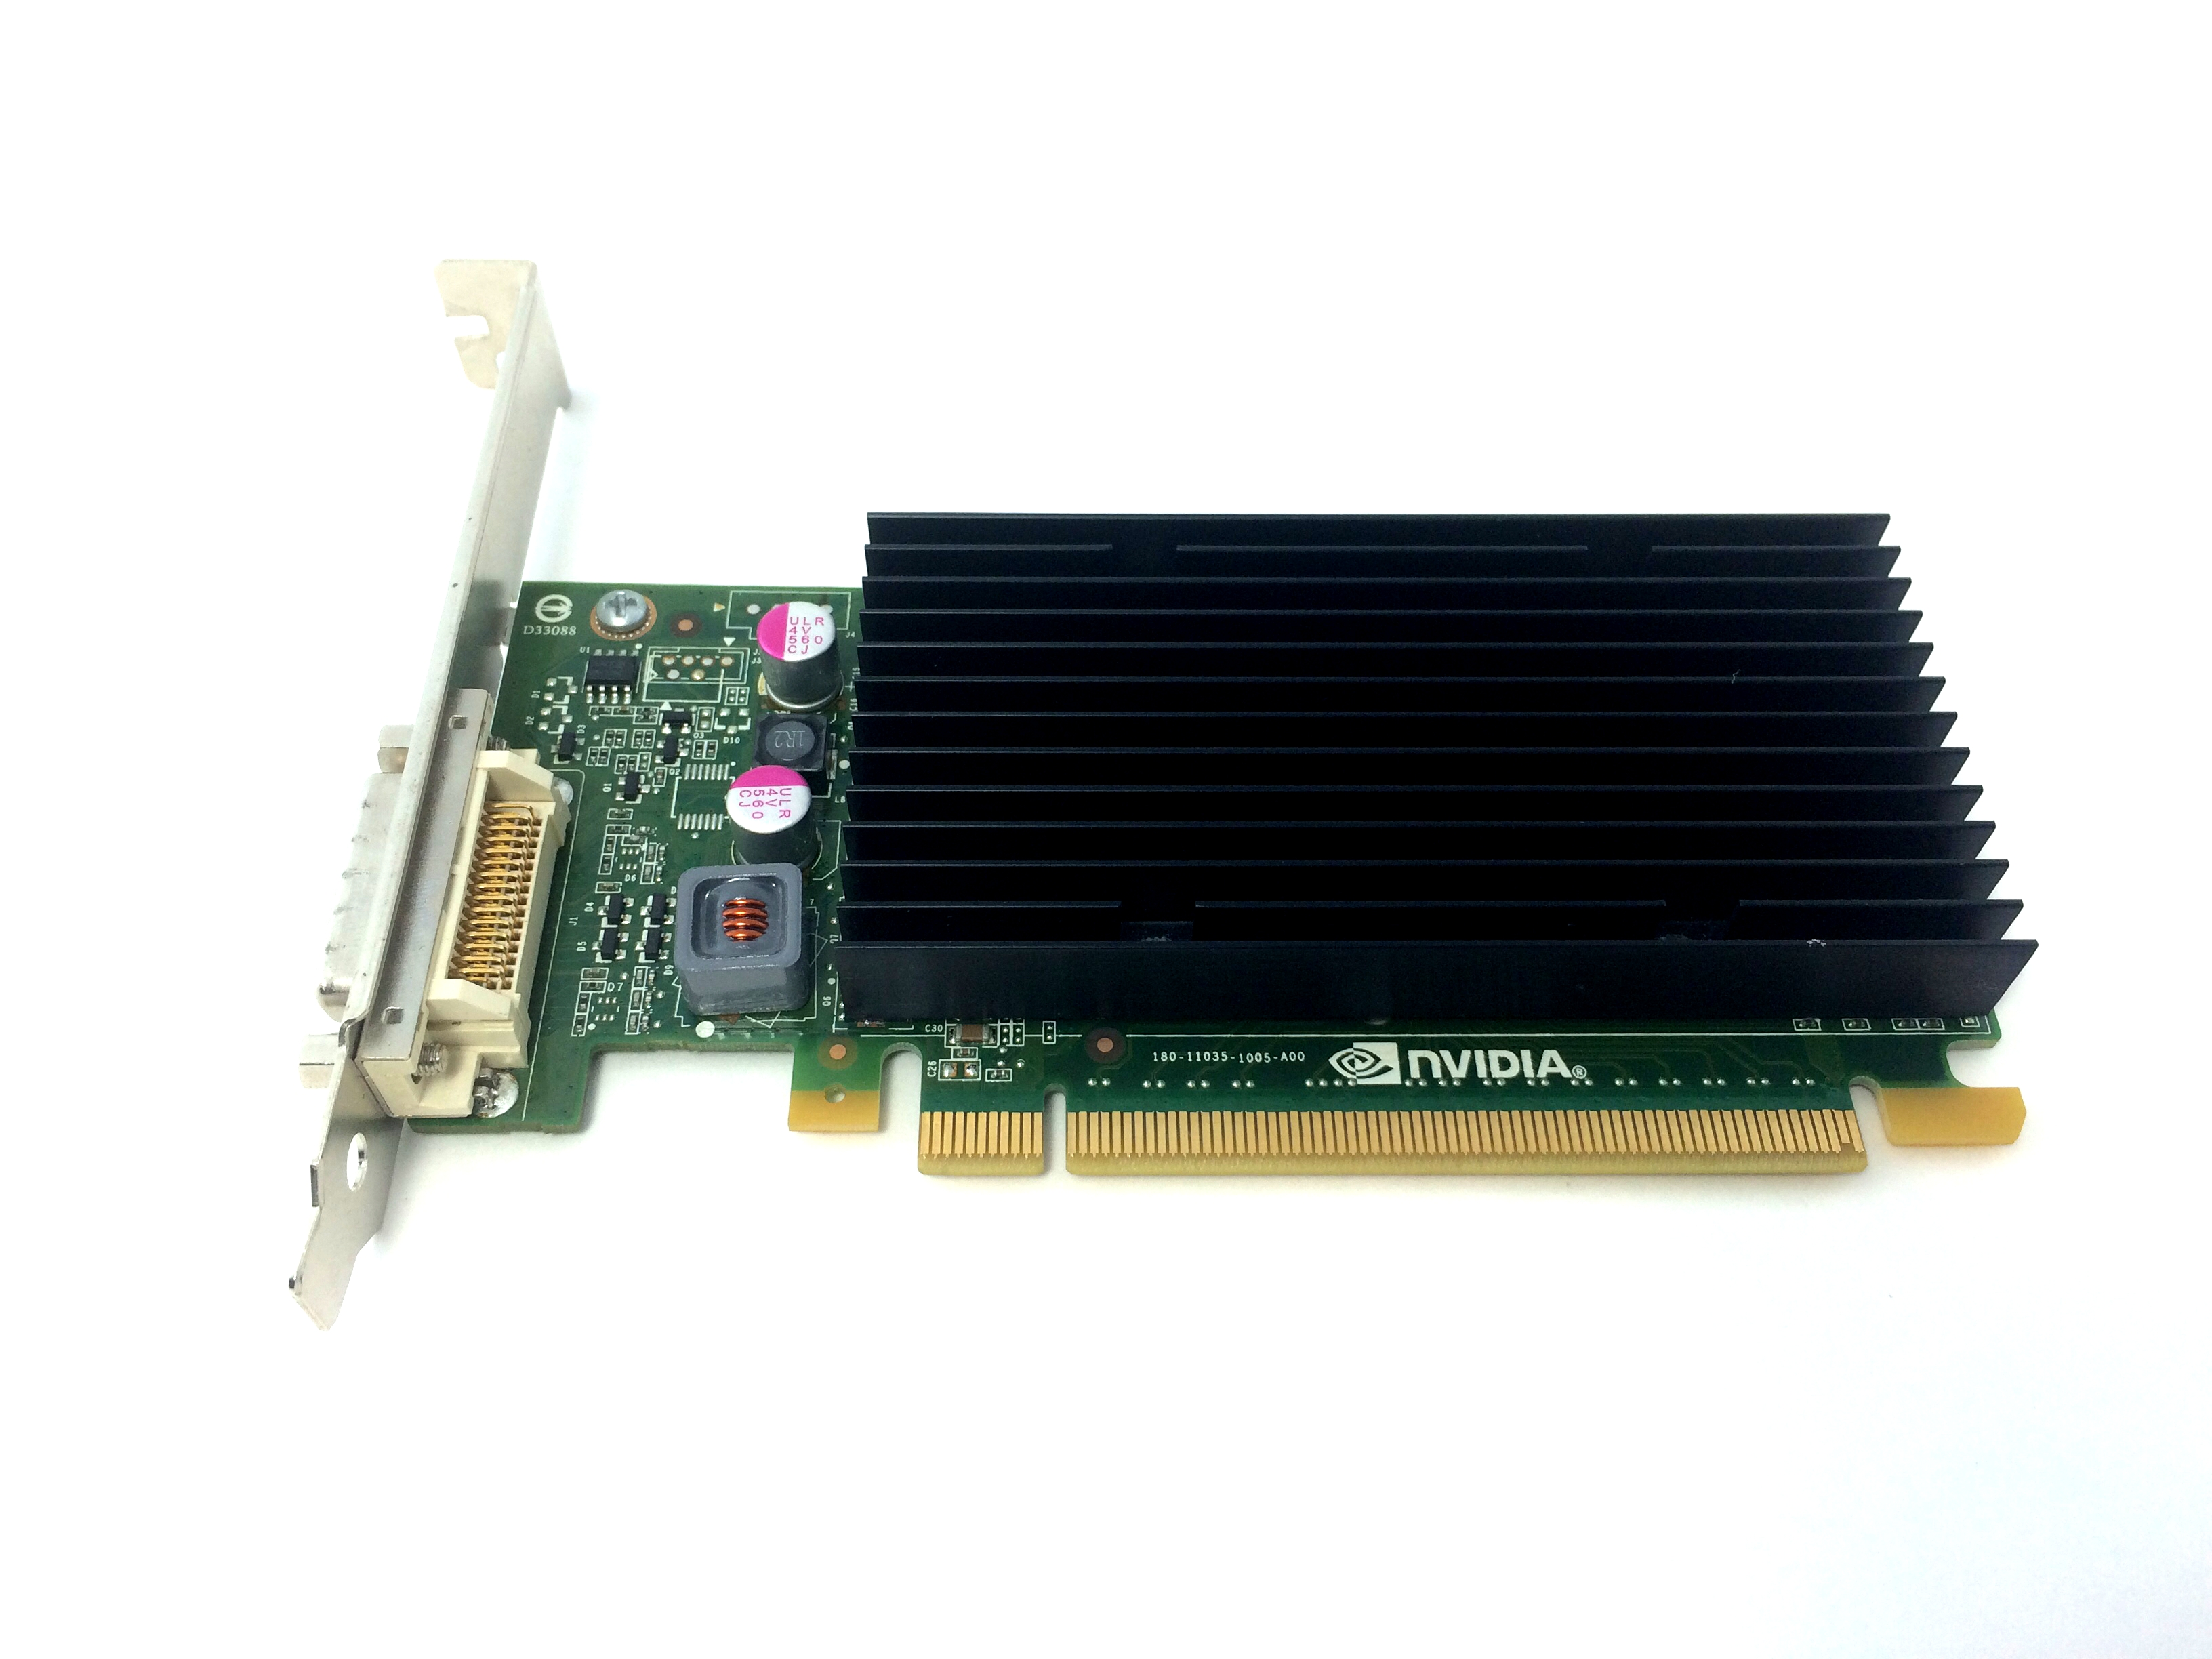 Nvidia Quadro NVS 300 PCI-E 2.0 X16 Graphics Card (4M1WV)